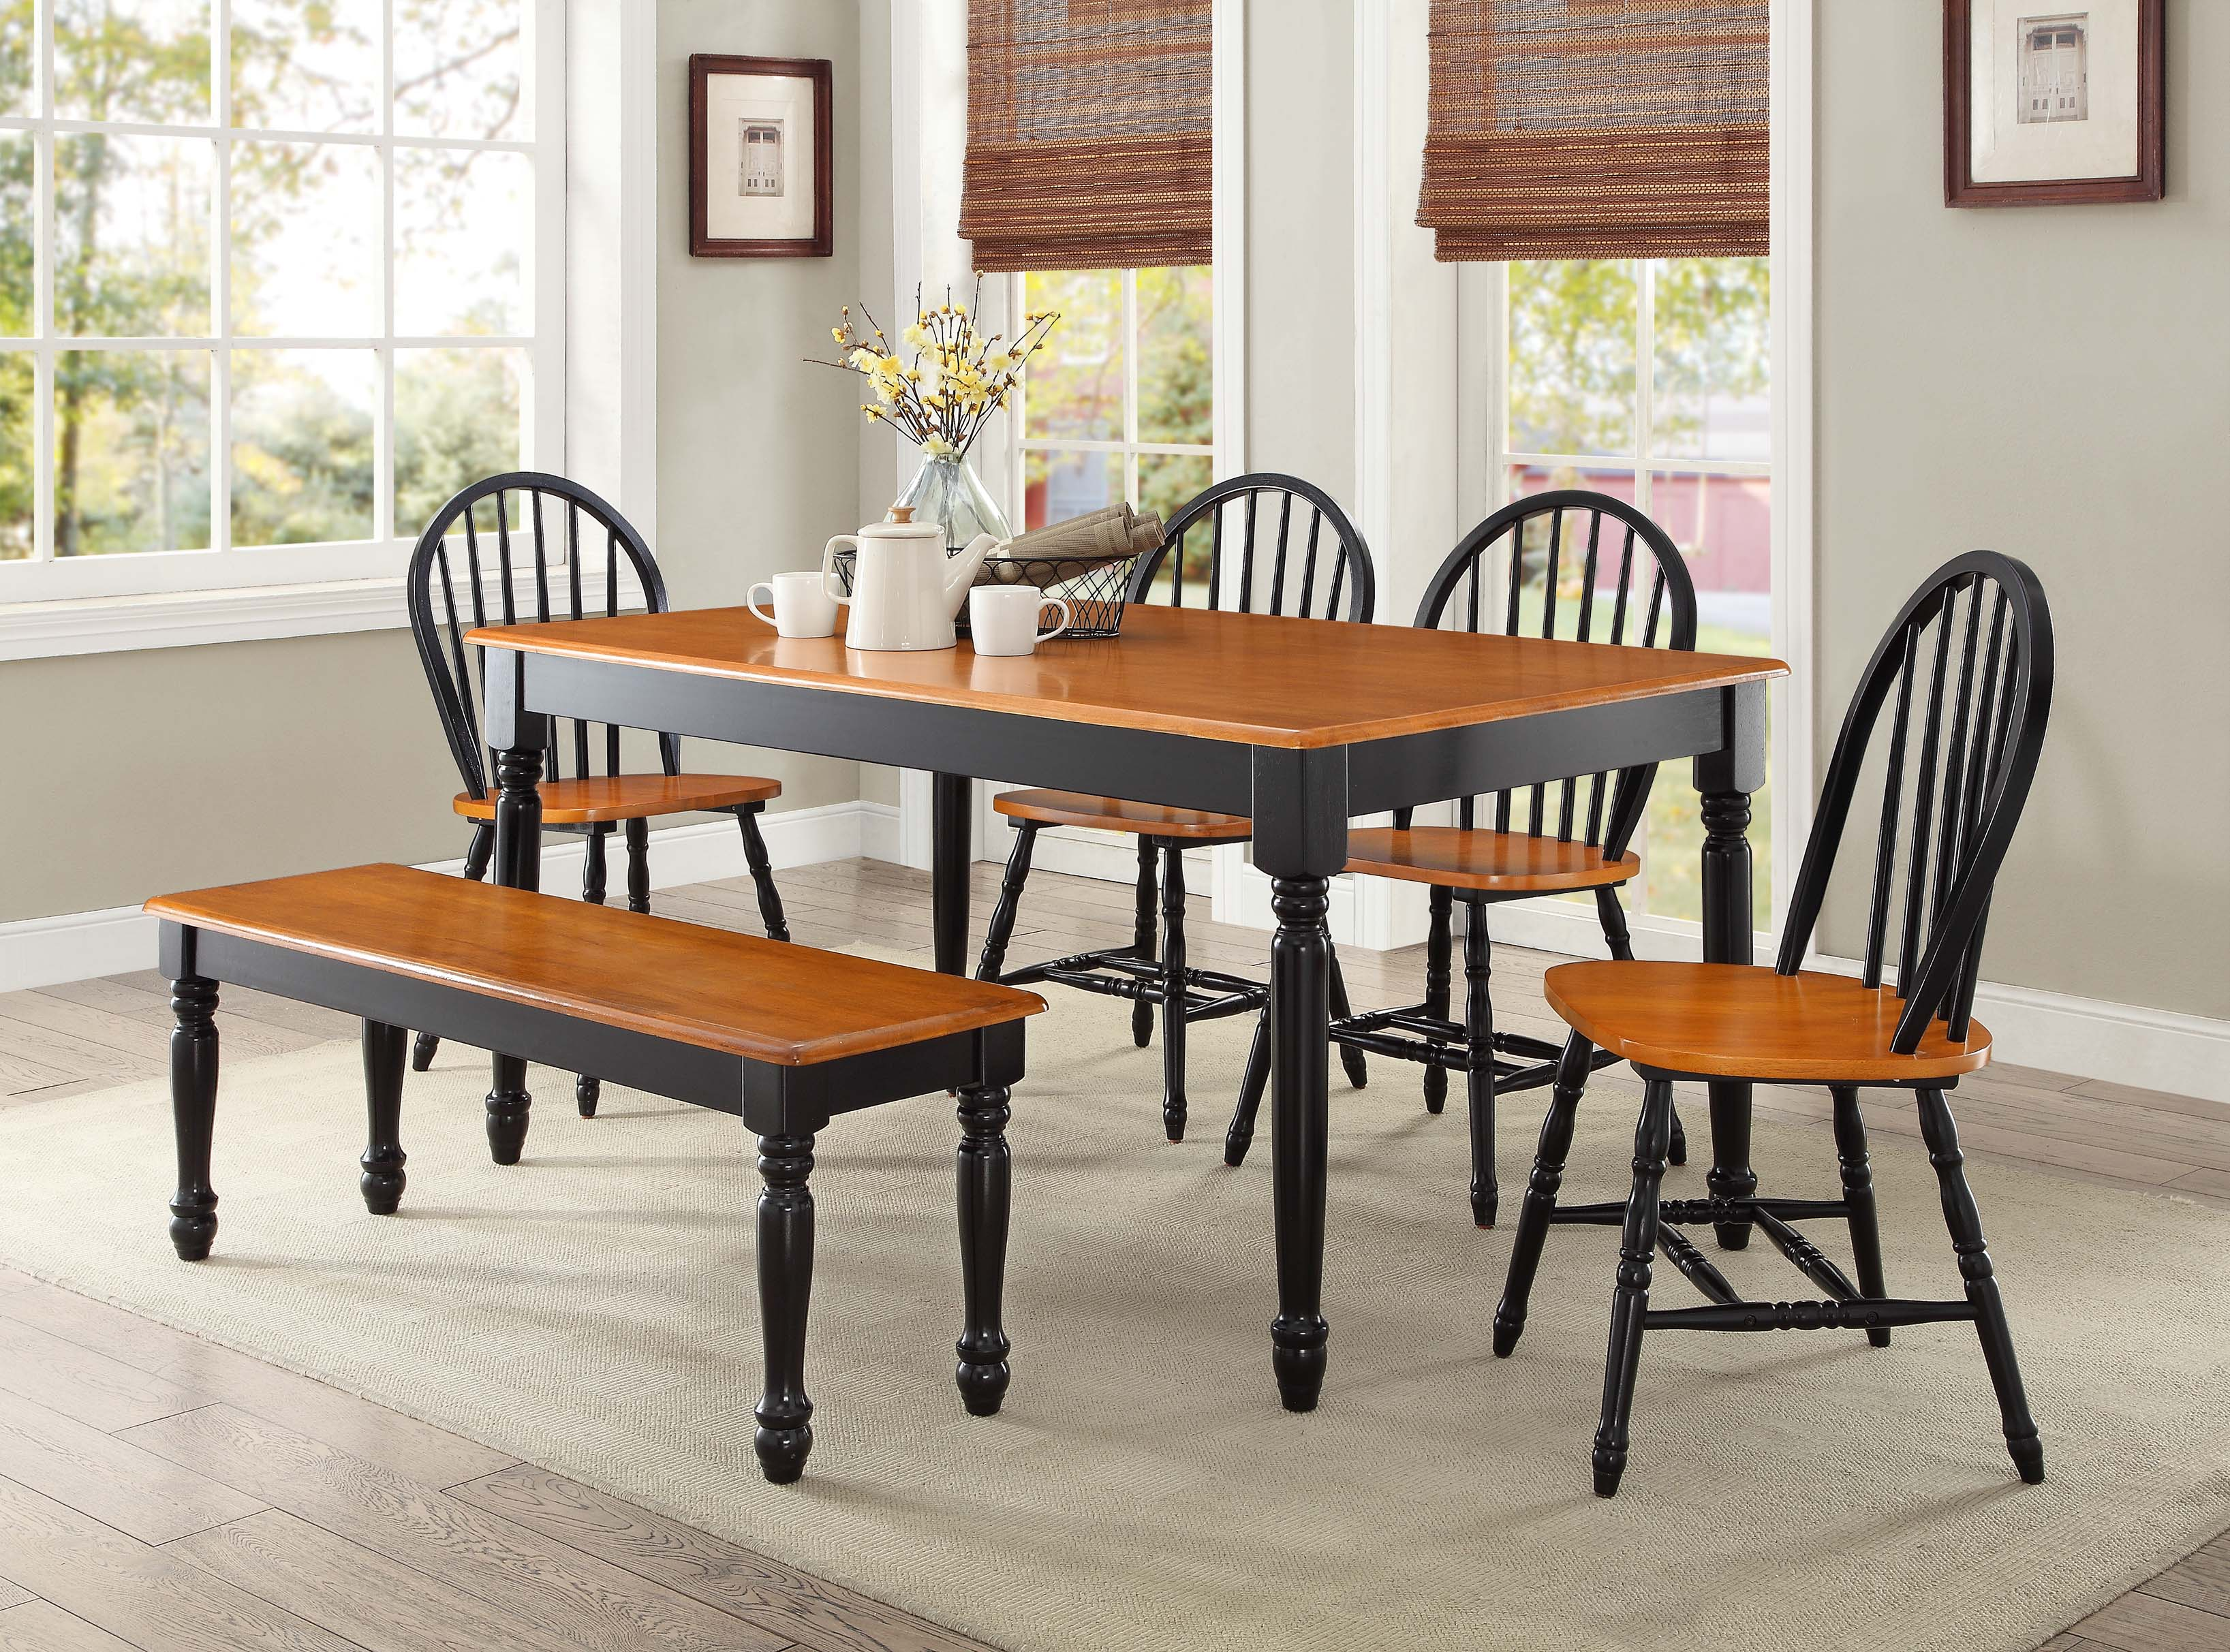 Dining Room Table Pictures Extraordinary Kitchen & Dining Furniture  Walmart Inspiration